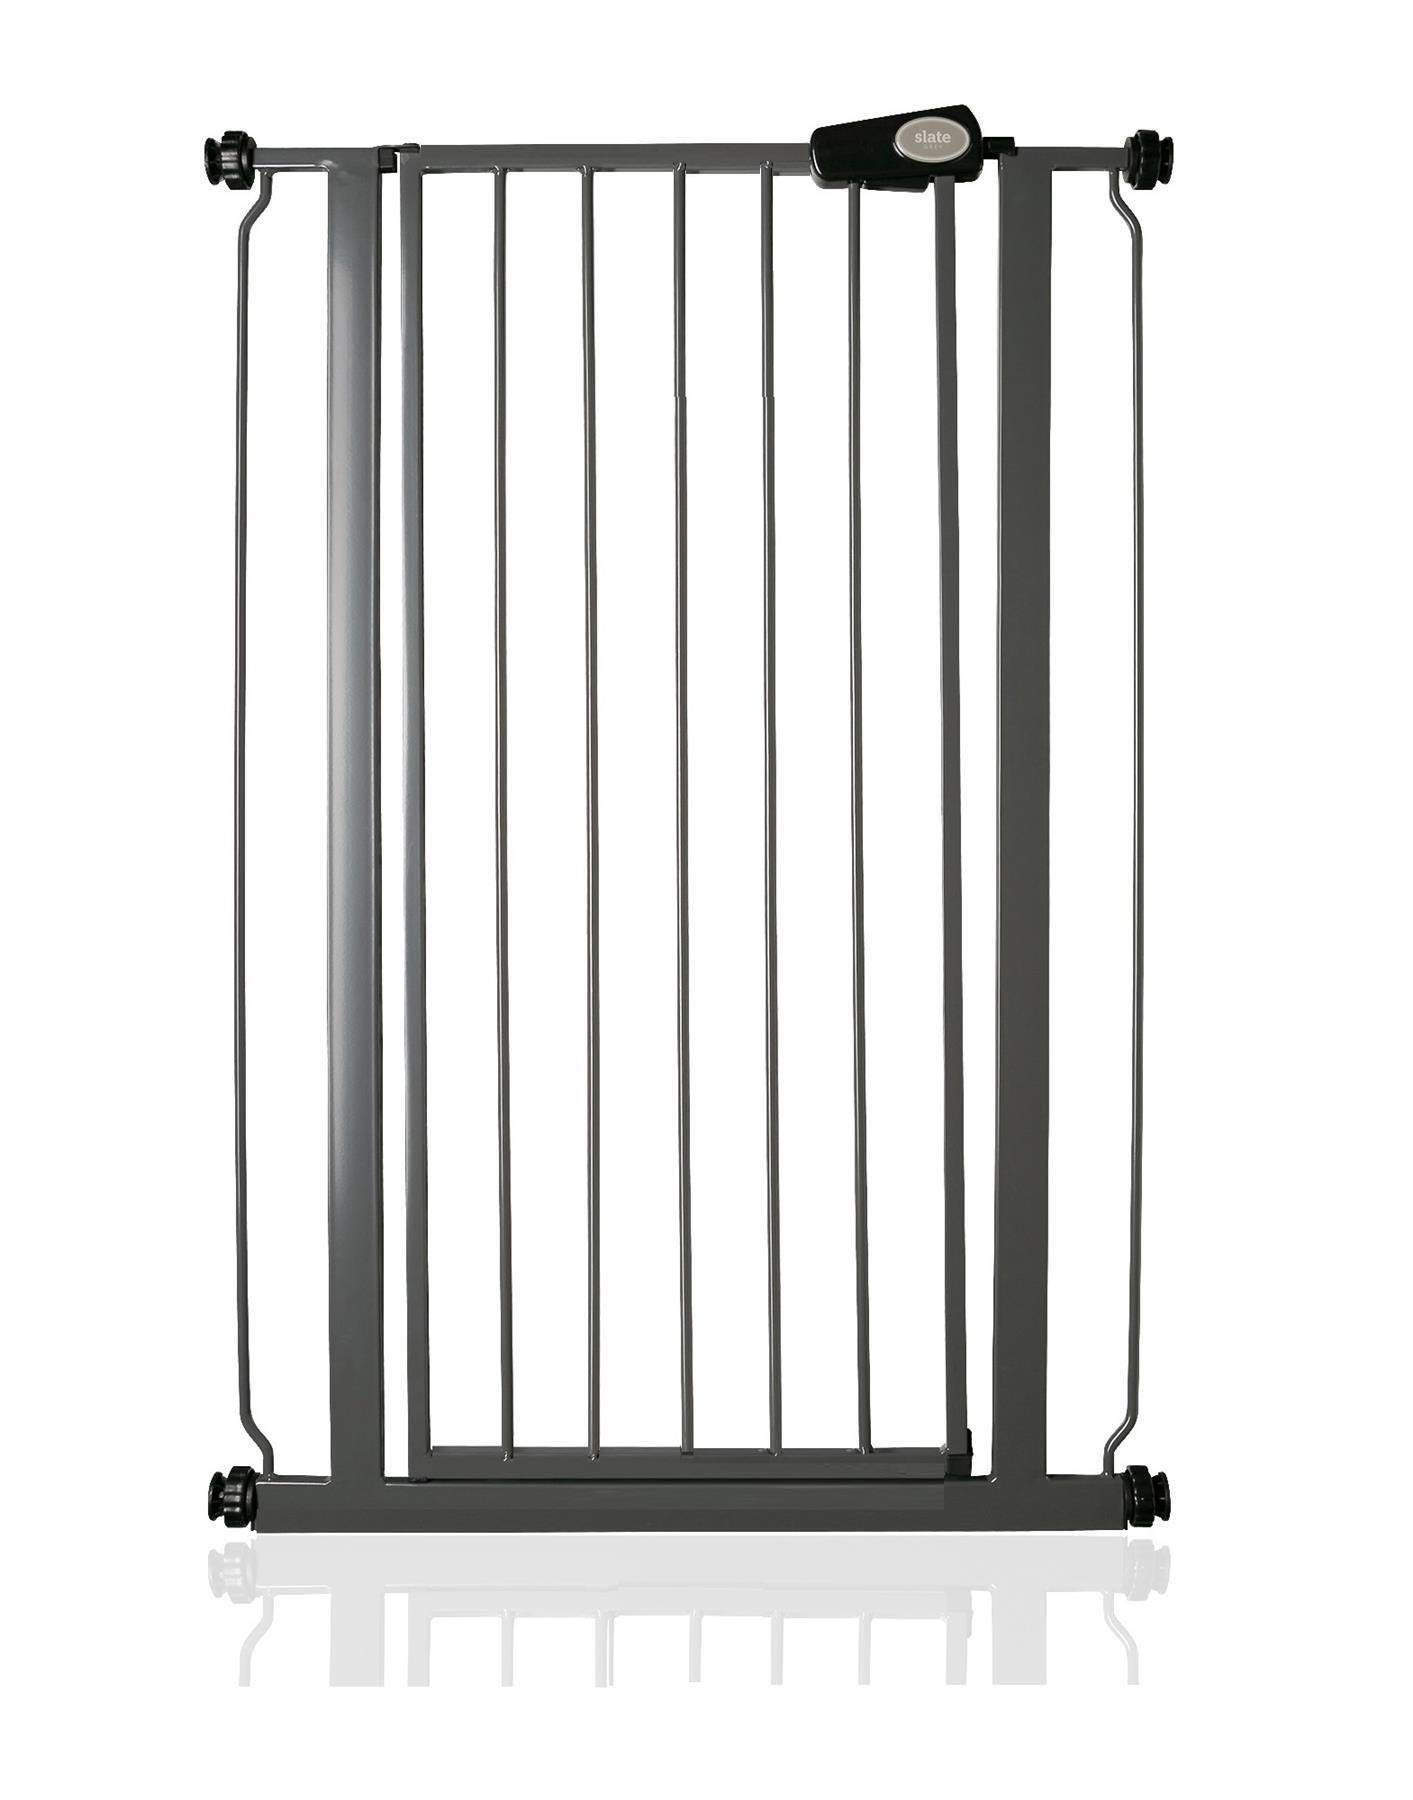 Bettacare Child and Pet Gate Range 75cm - 147.5cm (68.5cm - 75cm, Slate Grey) Bettacare Pressure Fitted White Metal Gate Double Locking Mechanism 2